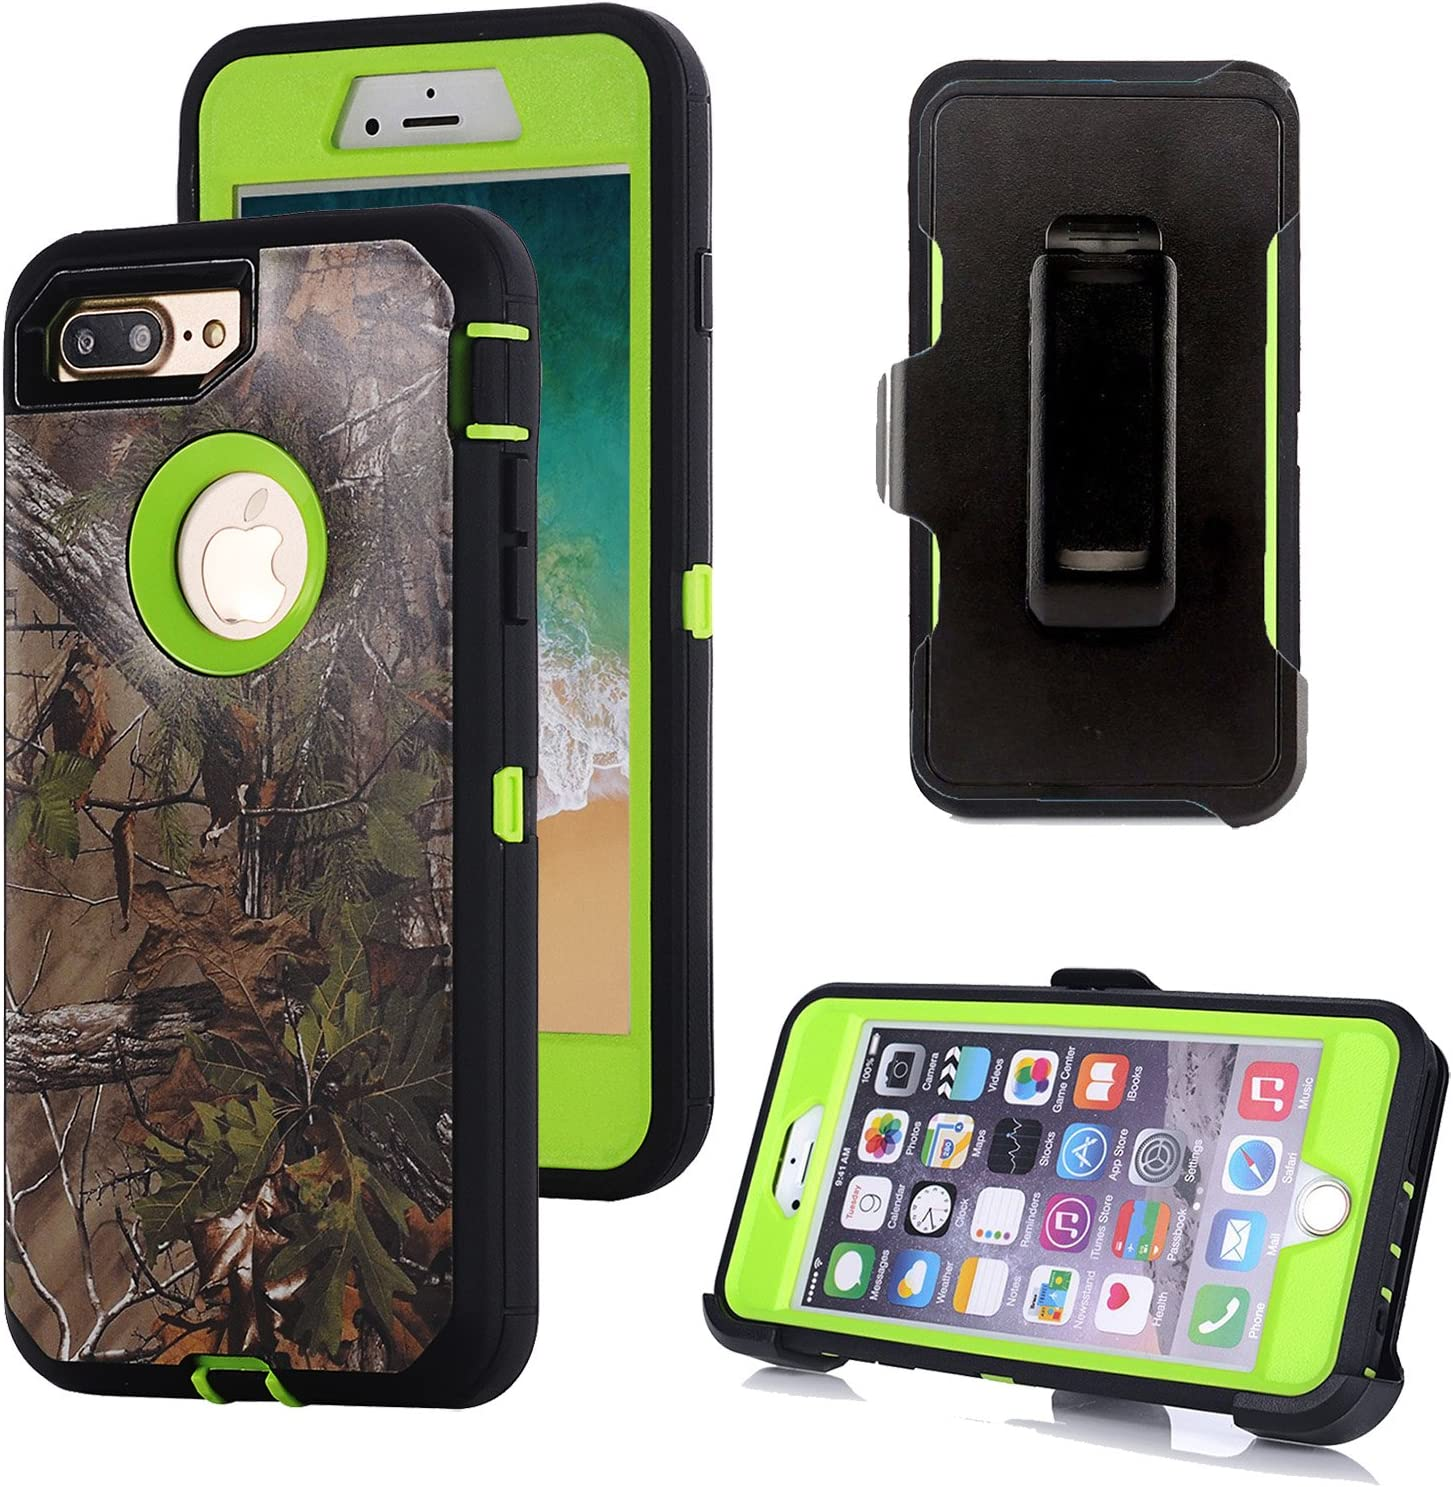 iPhone 8 Plus Case, Harsel Heavy Duty Camo High Impact Tough Hybrid Rugged Armor Military Grade Protective Case with Belt Clip Built-in Screen Protector for iPhone 8 Plus / 7 Plus (Forest Green)